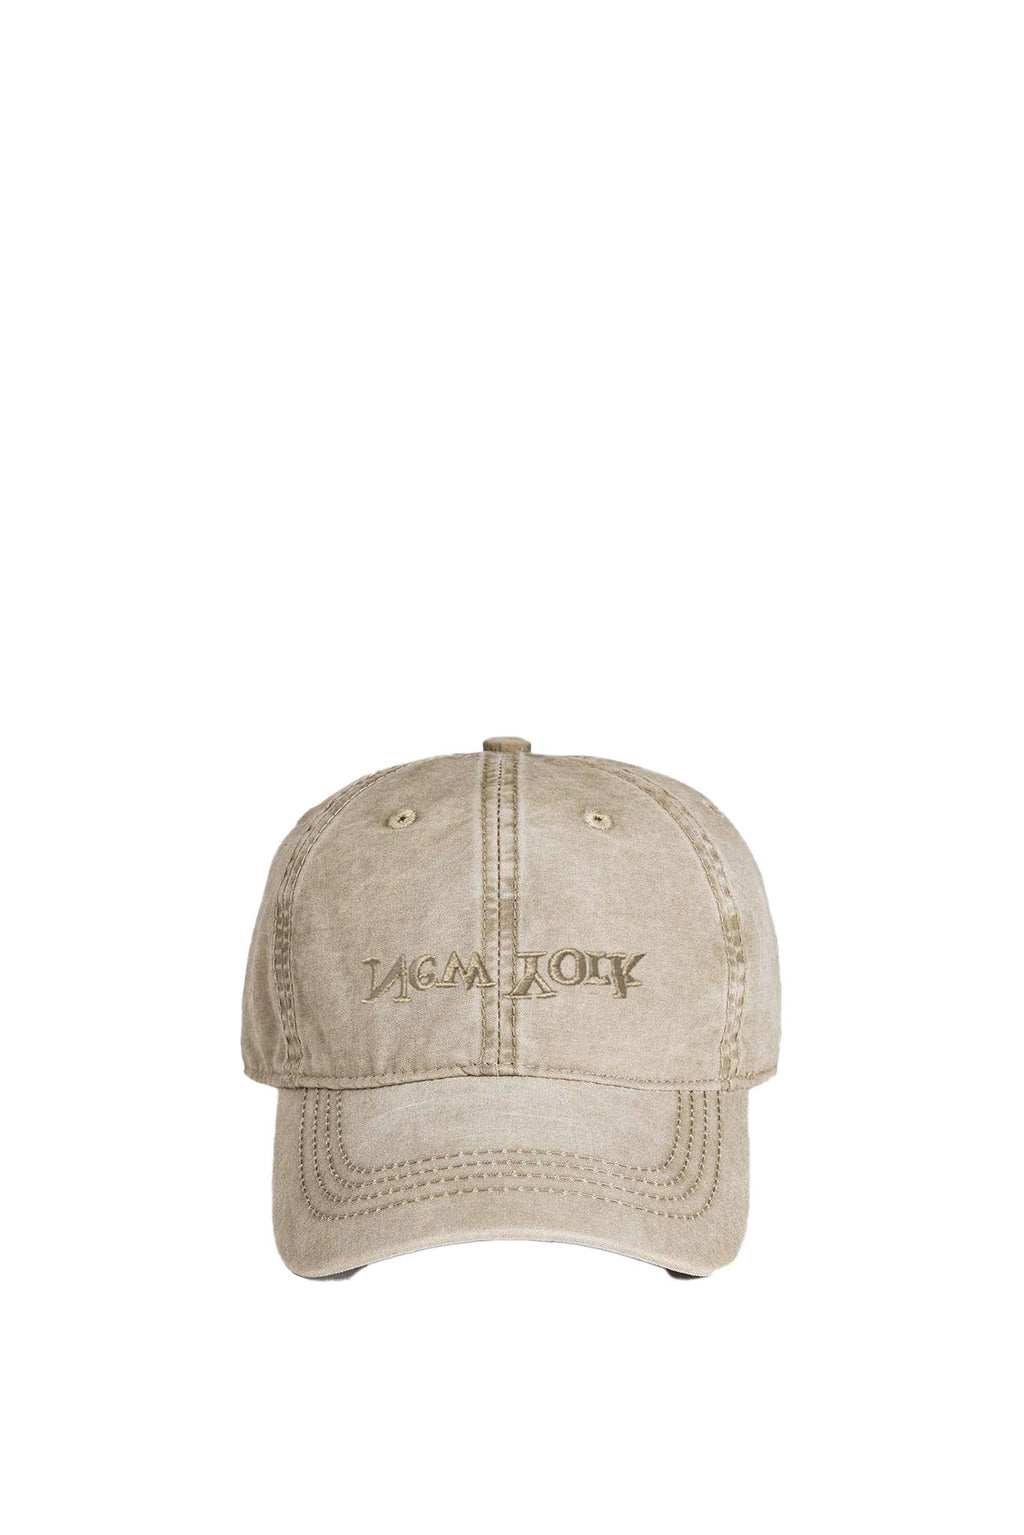 Khaki New York Embroidered Hat